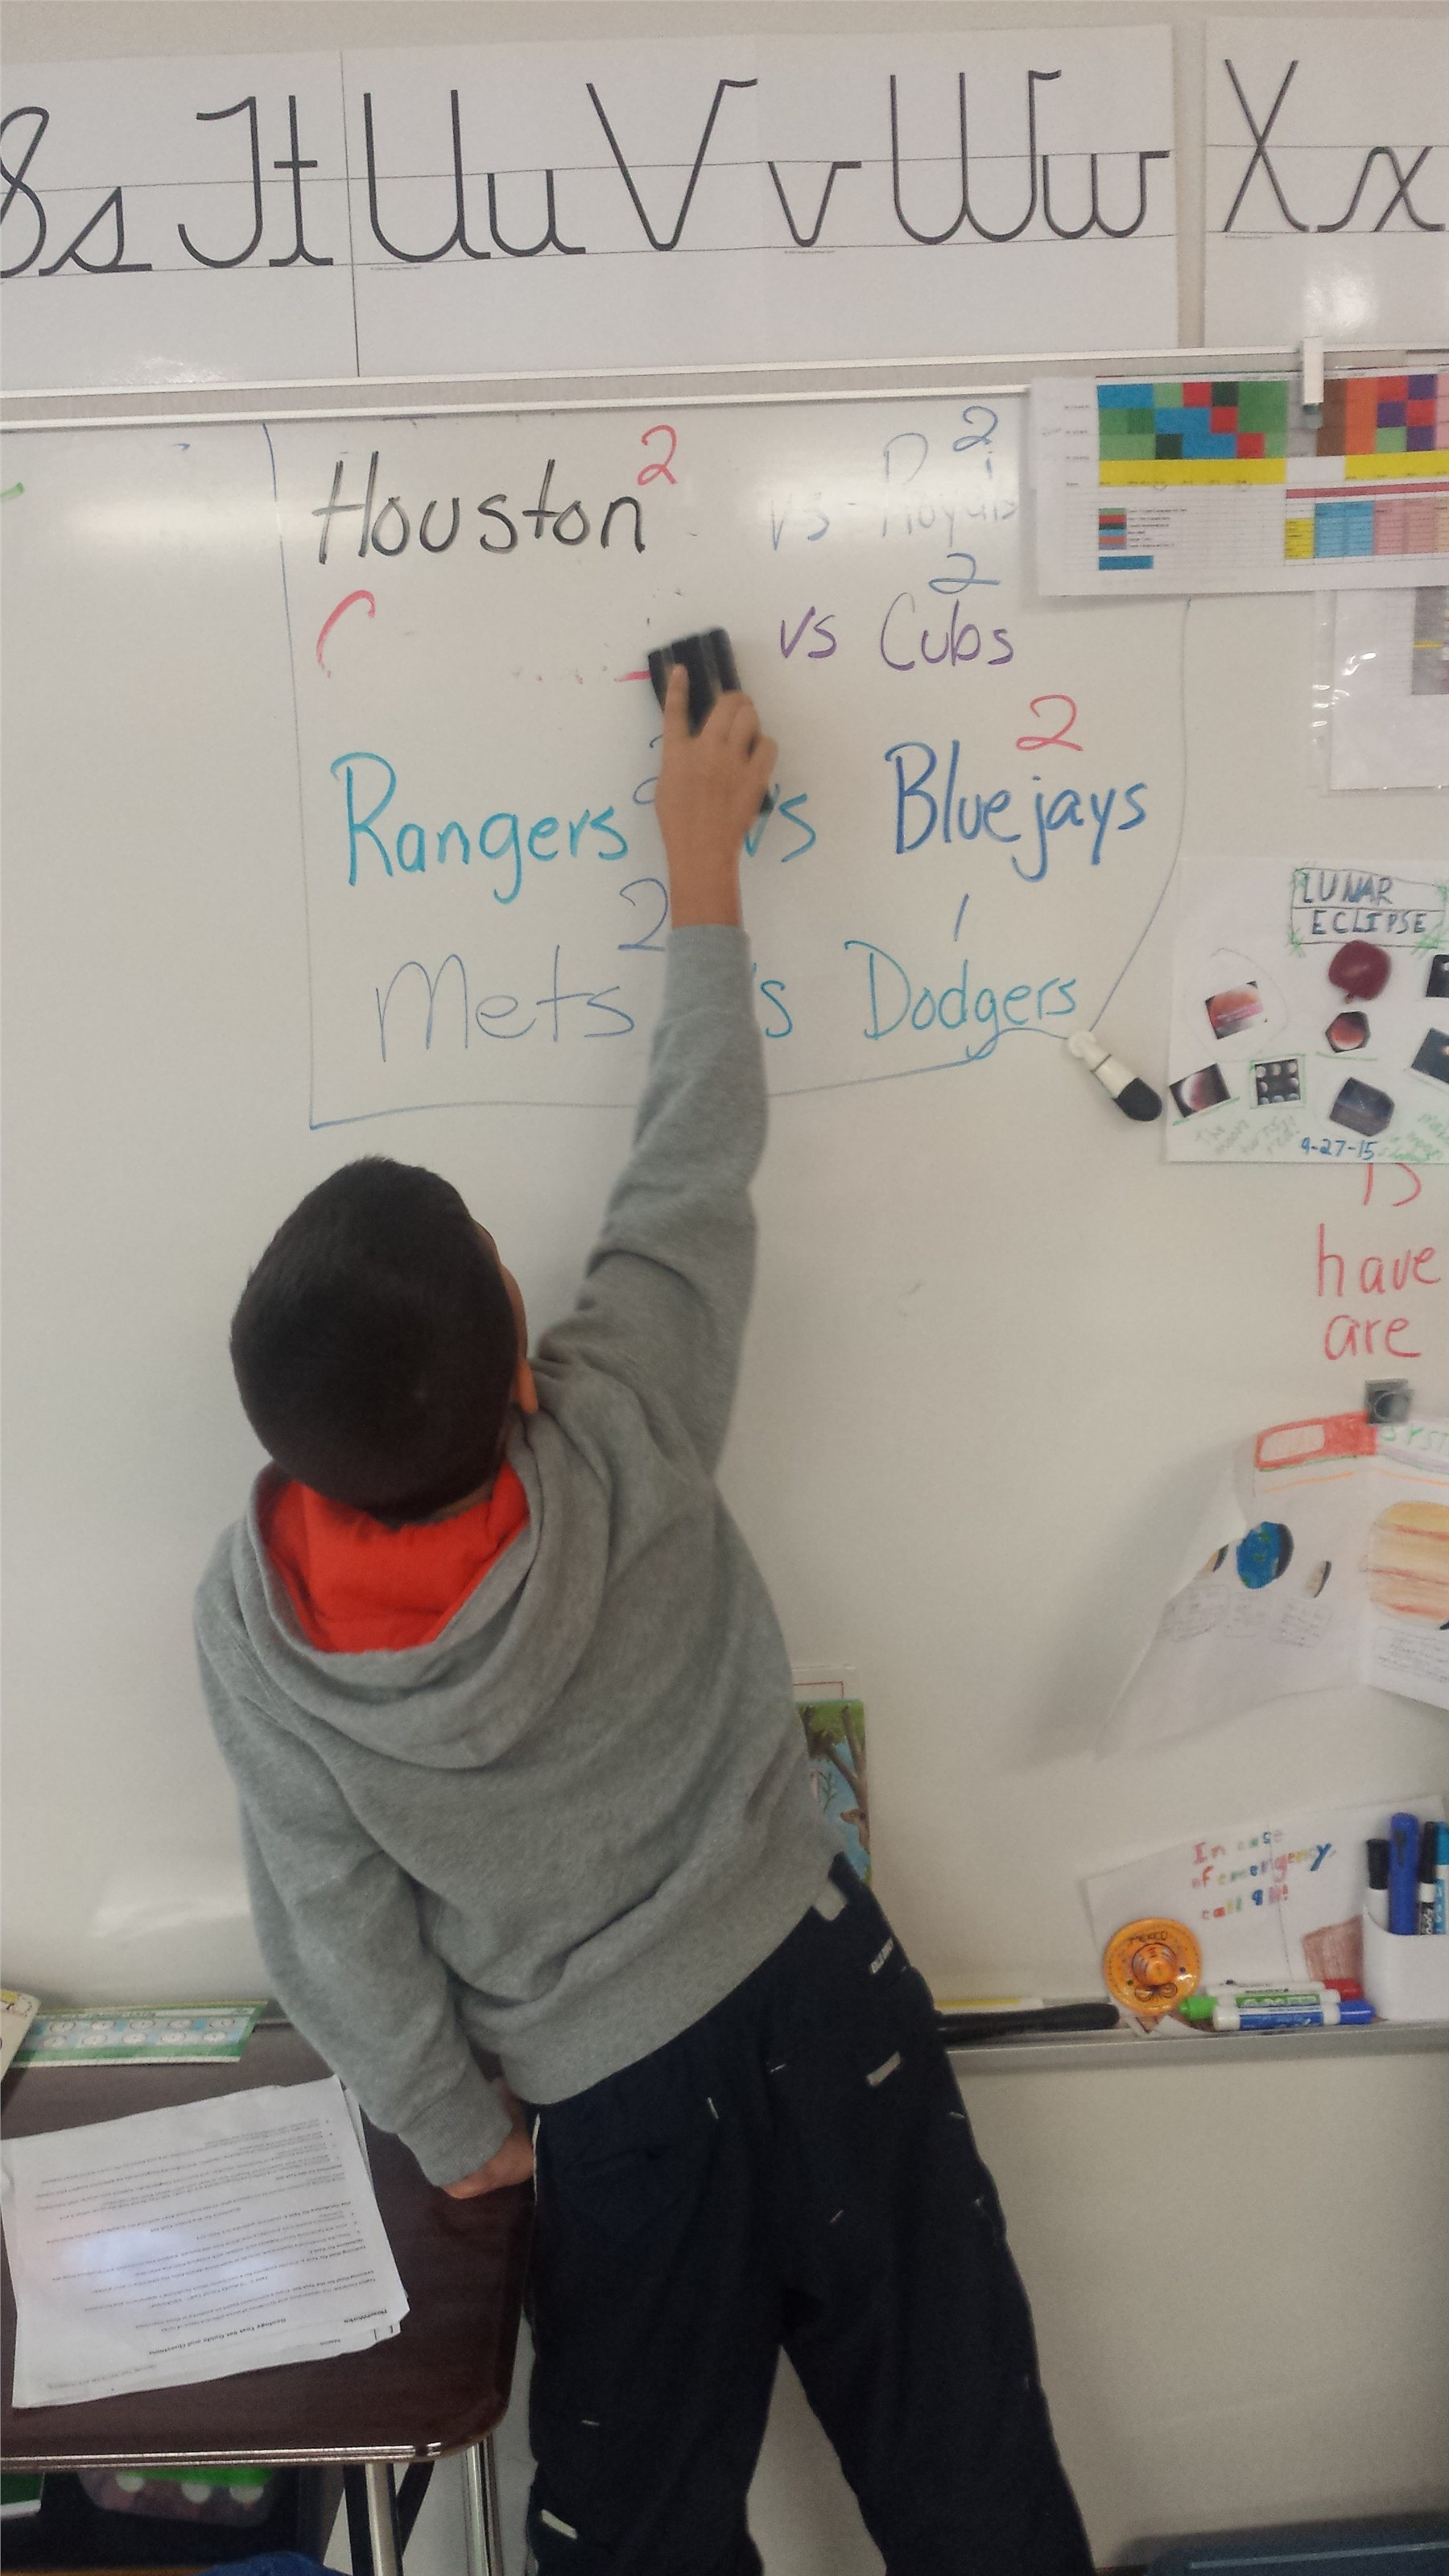 Working on the white board